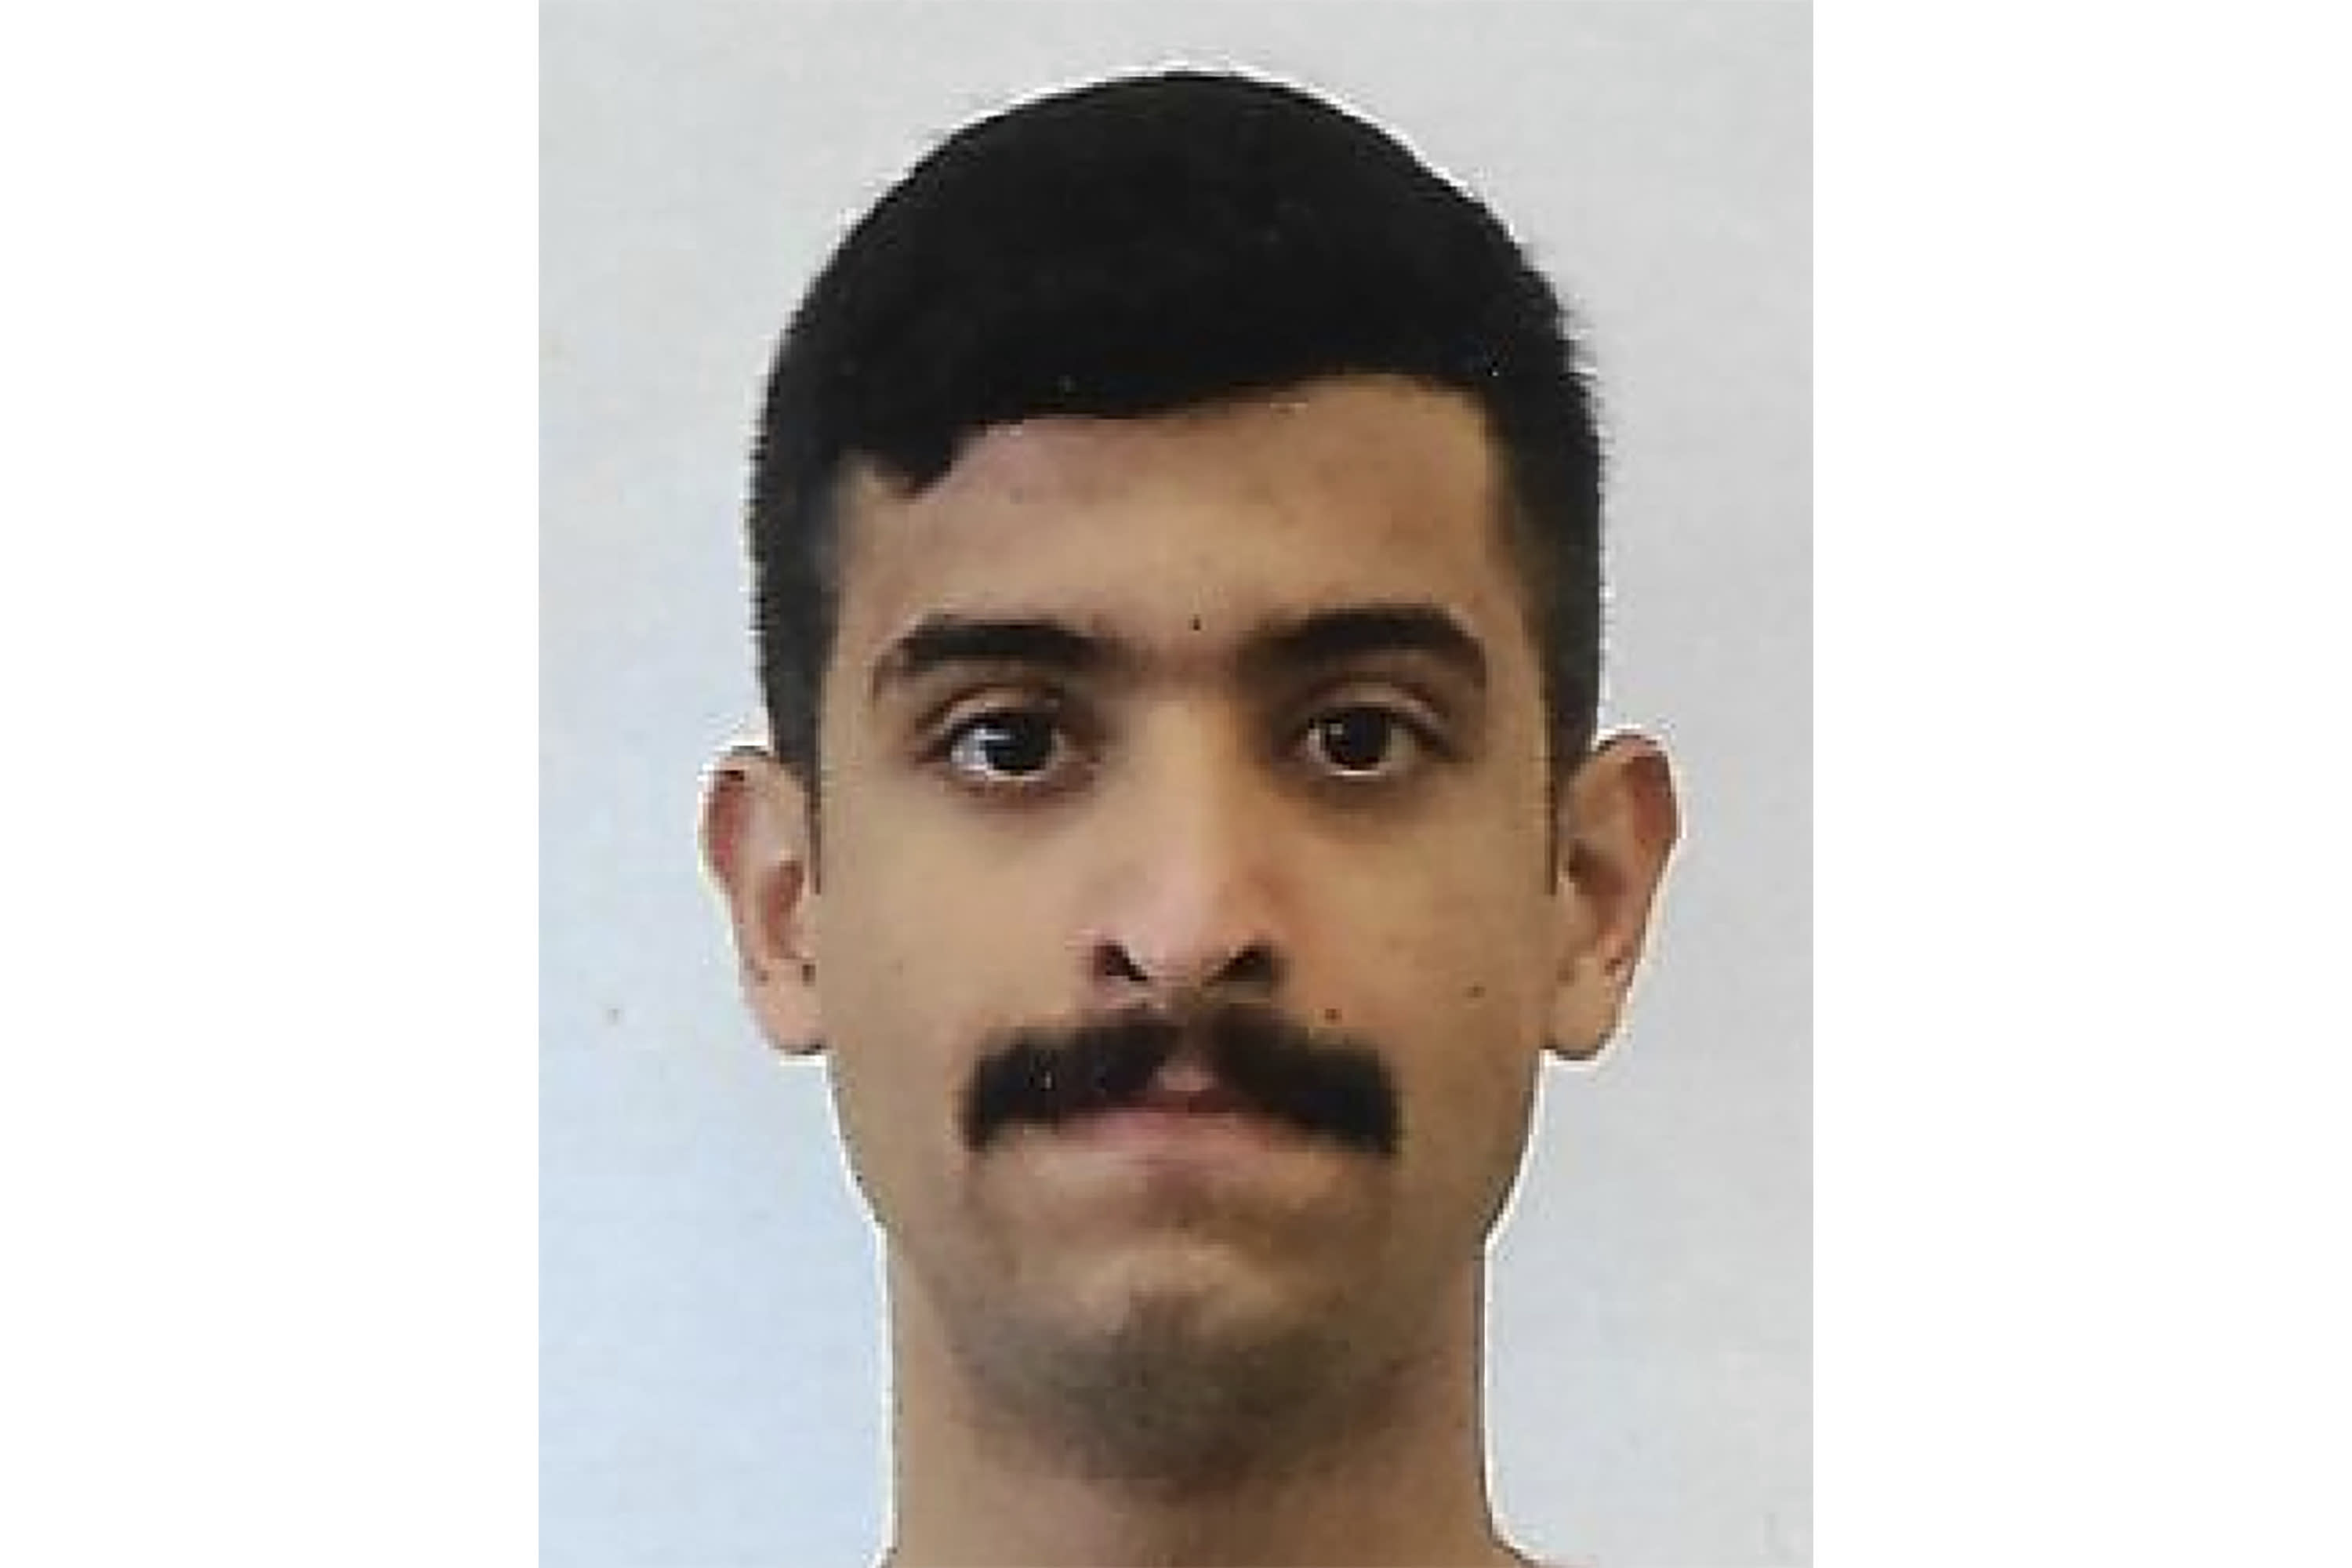 Pensacola Attack Probed for Terrorism Link. Saudi Suspect Clashed With Instructor.